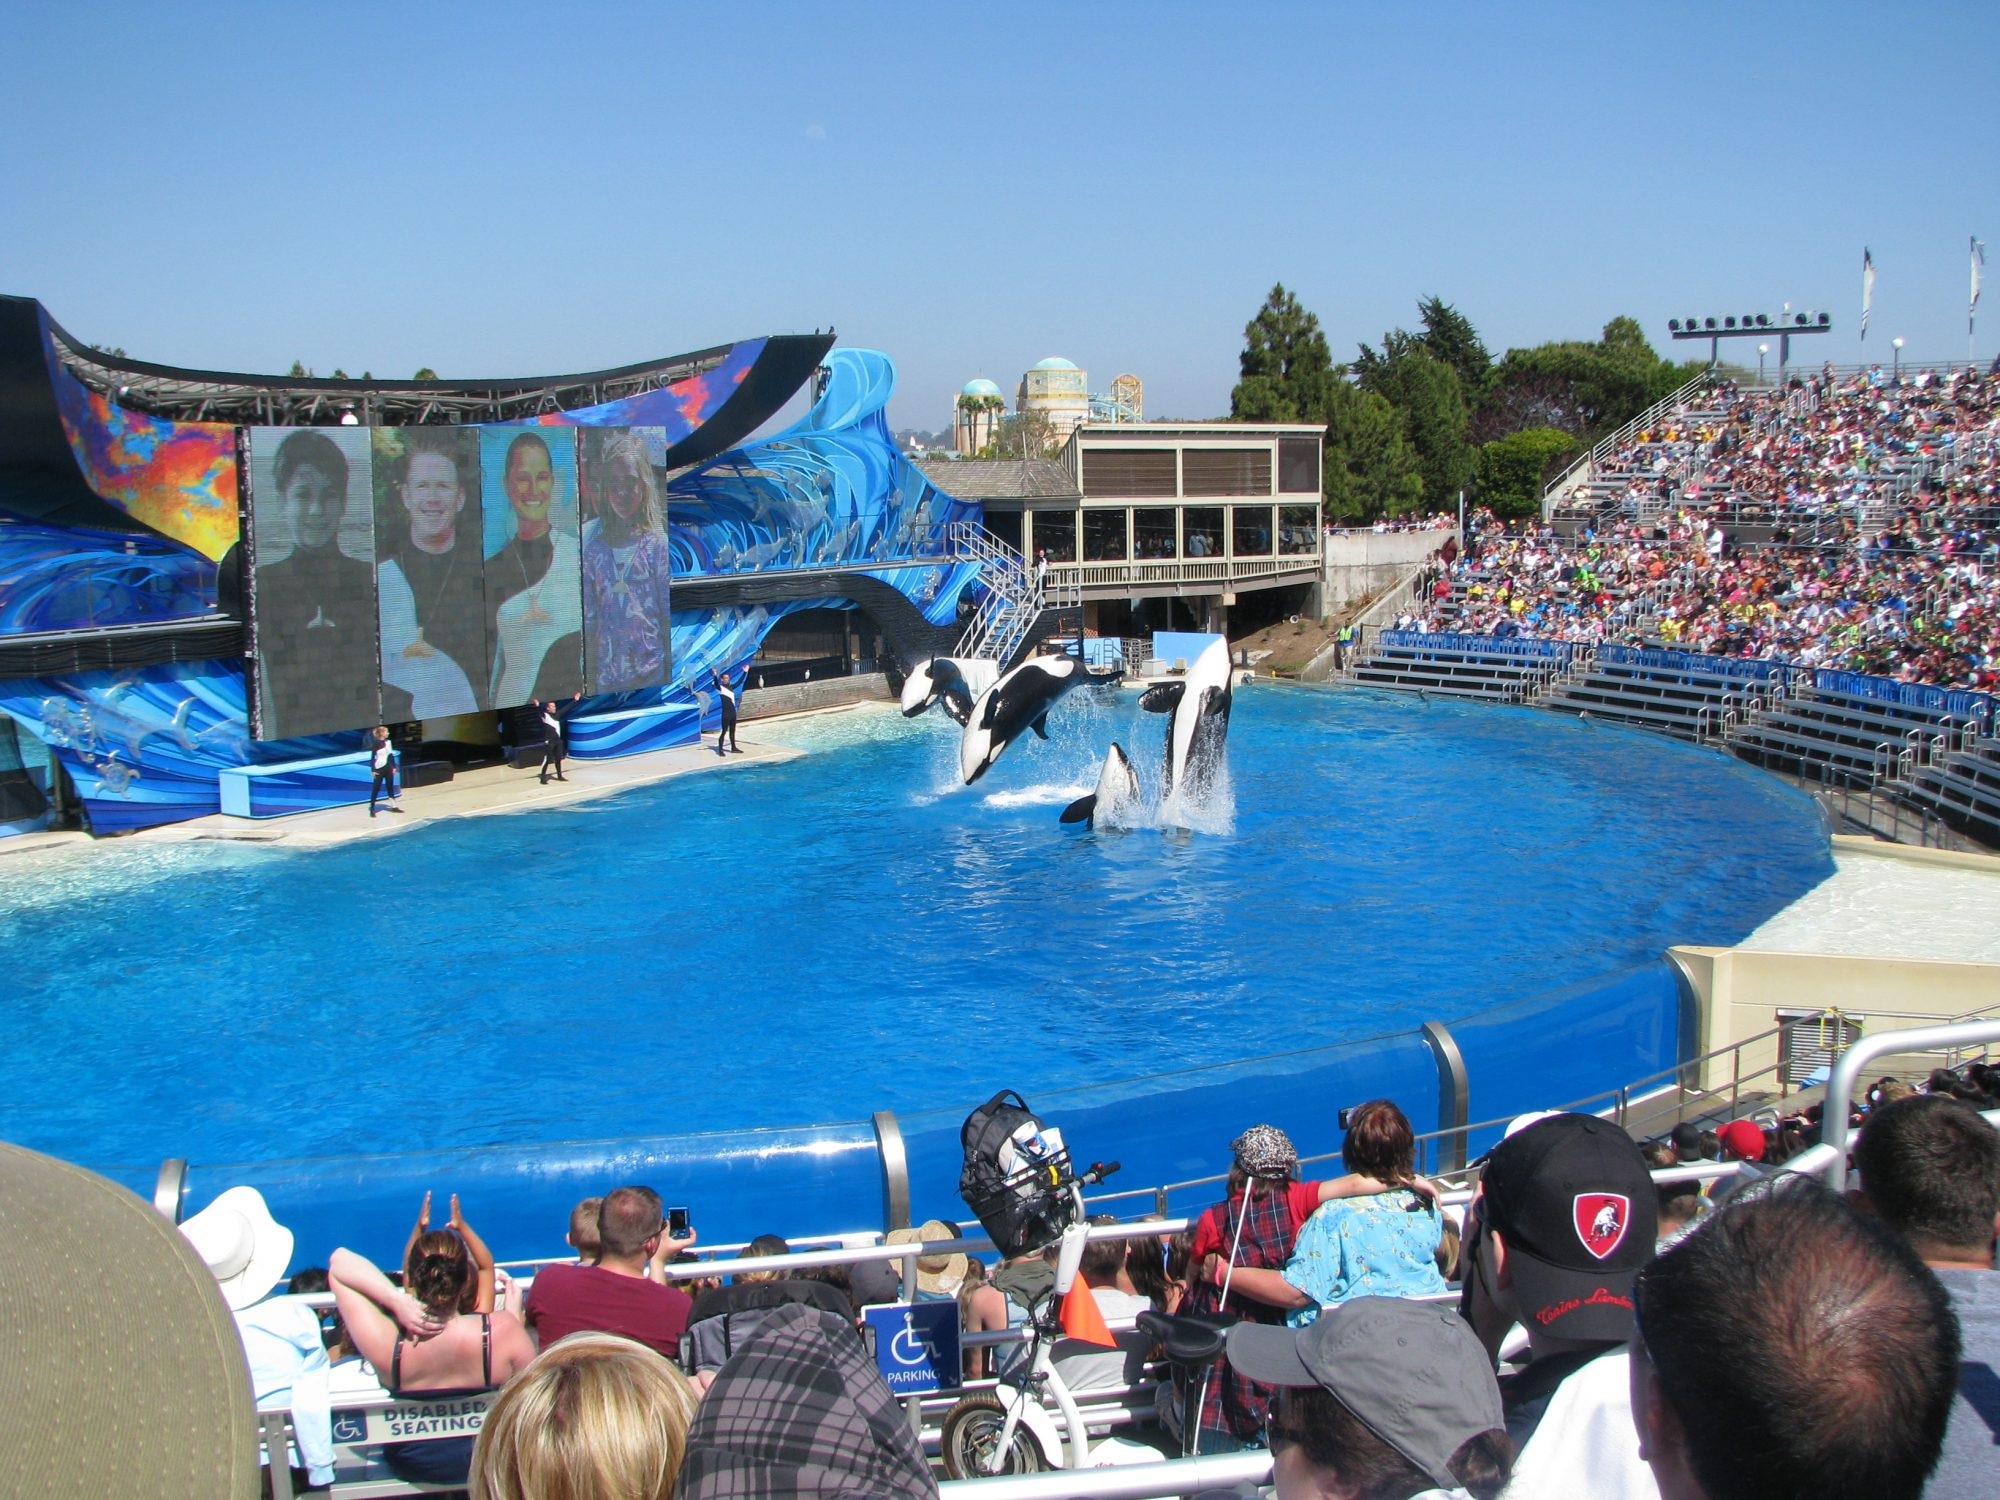 SeaWorld parts company with another CEO